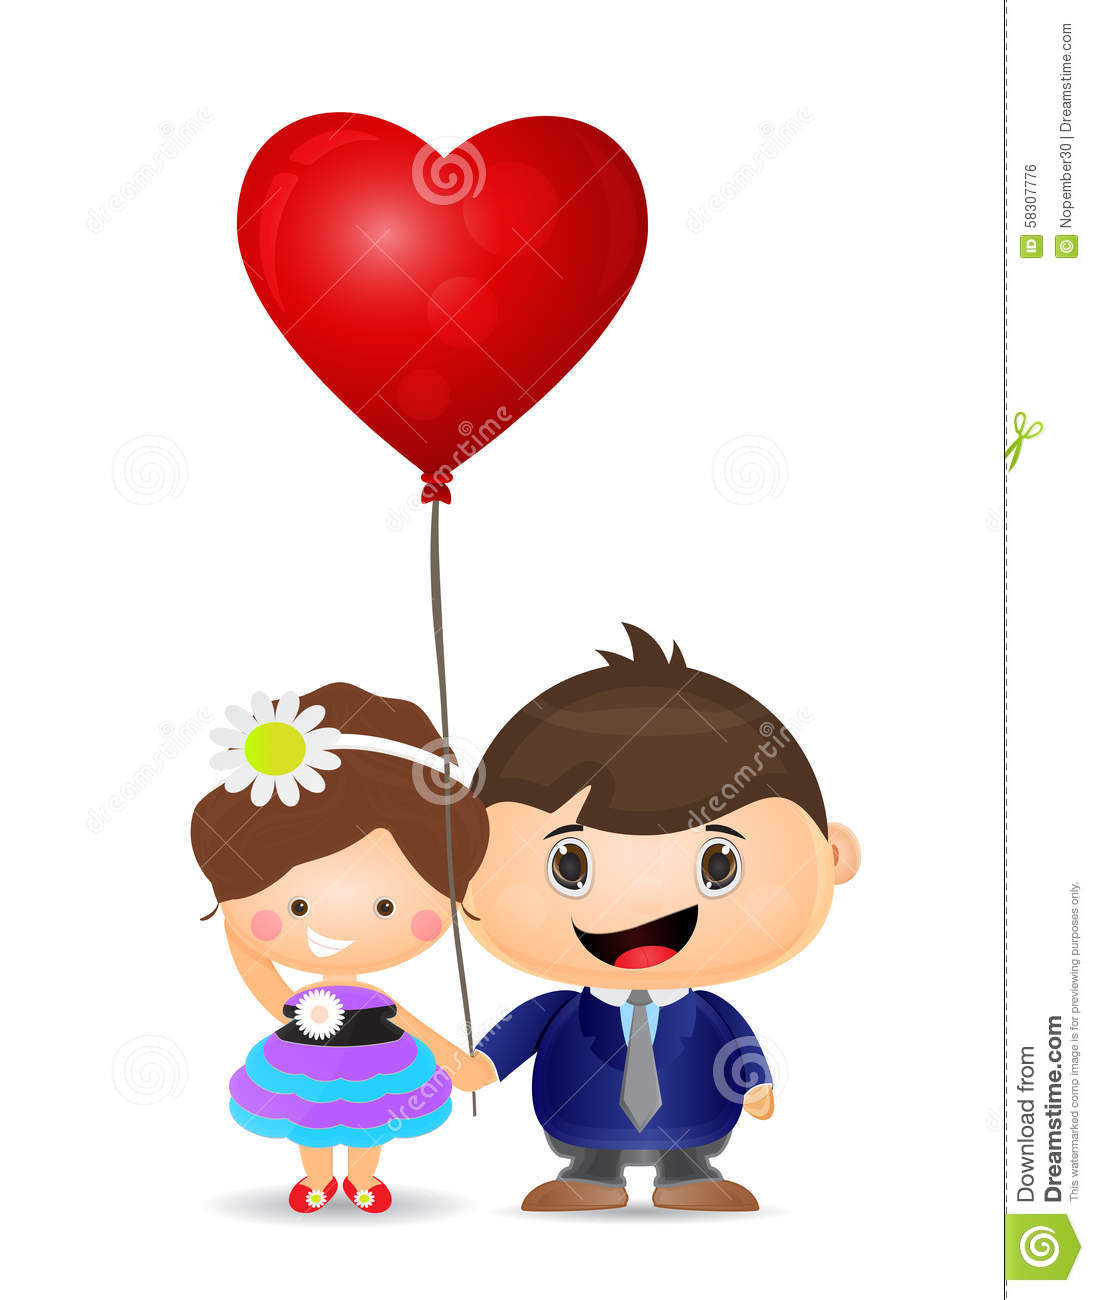 cartoon couple in love stock vector illustration of happy two thumbs up clipart free two thumbs up clipart